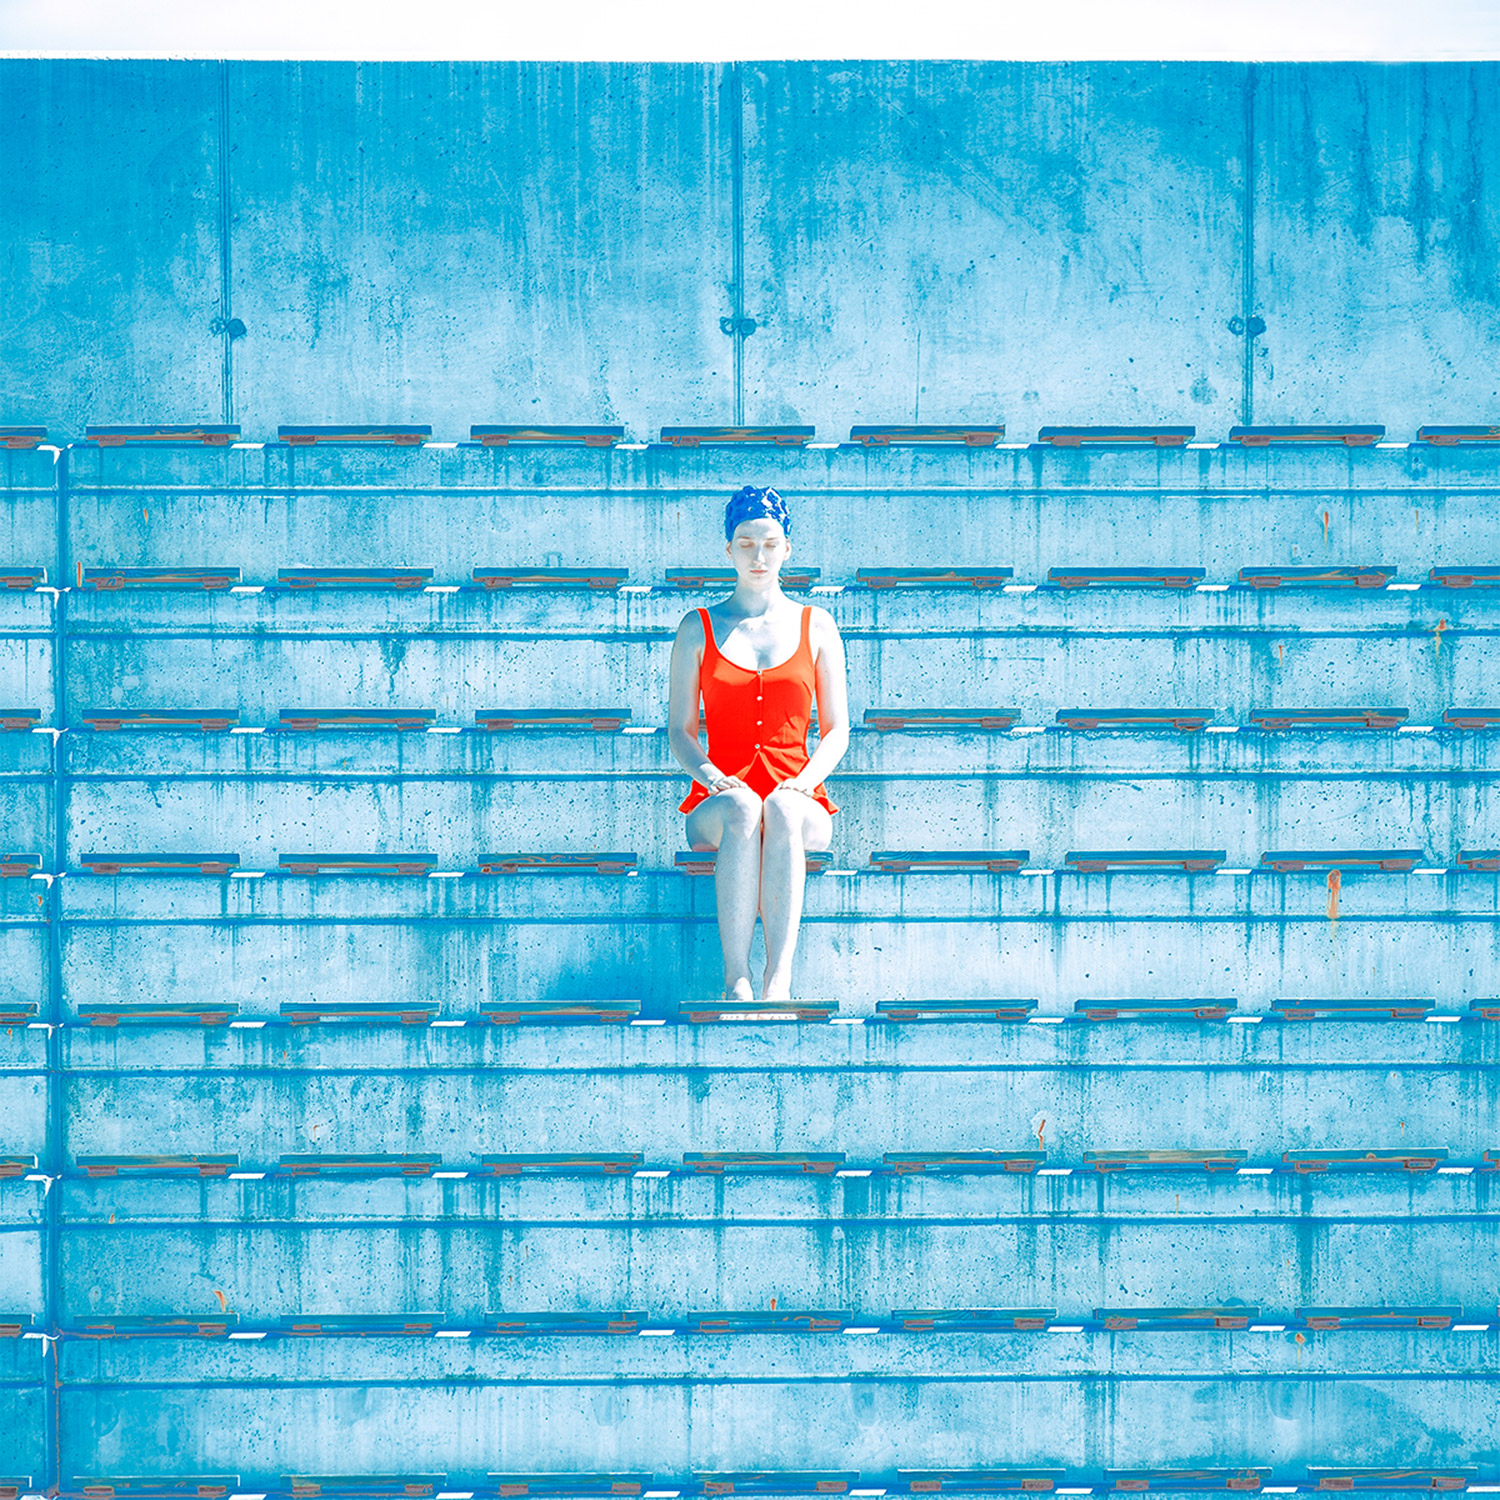 Maria Svarbova - The Tribune, sitting in middle of bleachers